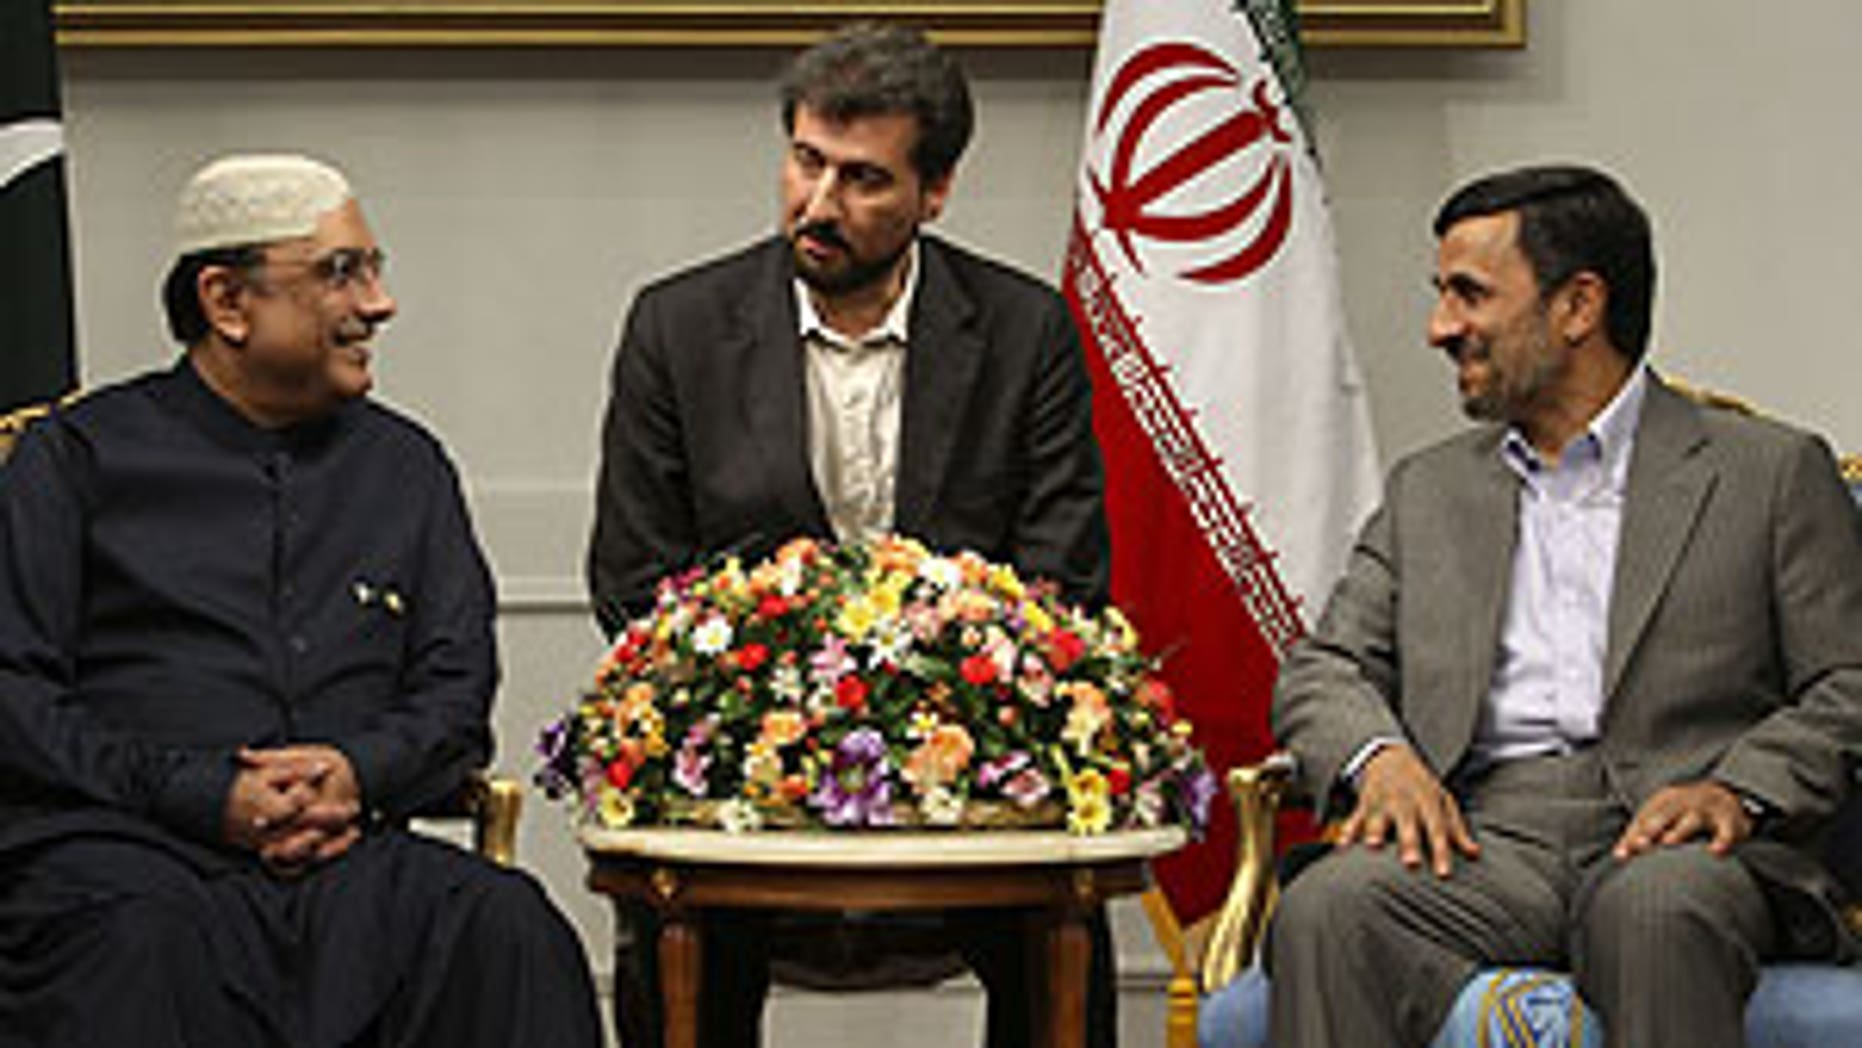 June 24: Iranian President Mahmoud Ahmadinejad, right, and his Pakistani counterpart Asif Ali Zardari meet at the Iranian presidency office in Tehran, Iran. At center is an unidentified interpreter.